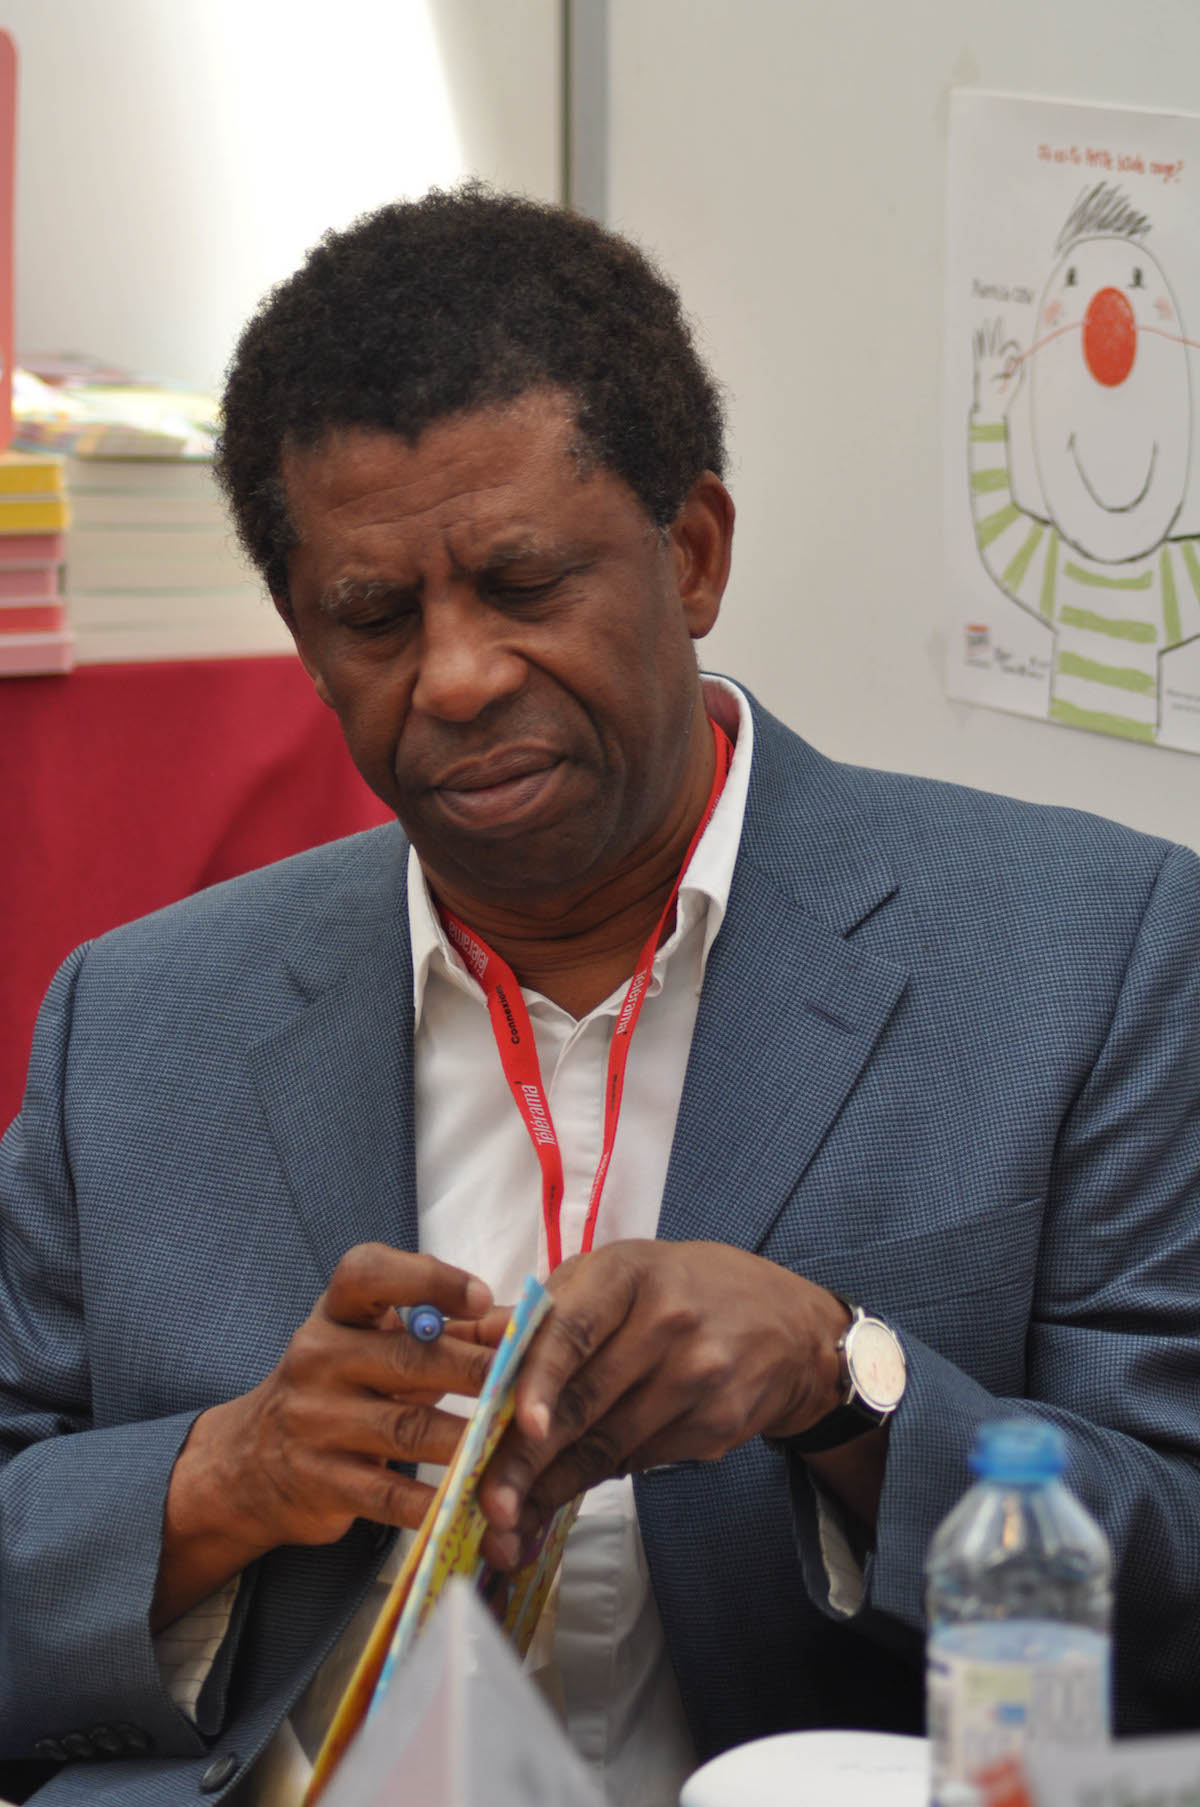 File:Dany laferriere (14365935216).jpg - Wikimedia Commons